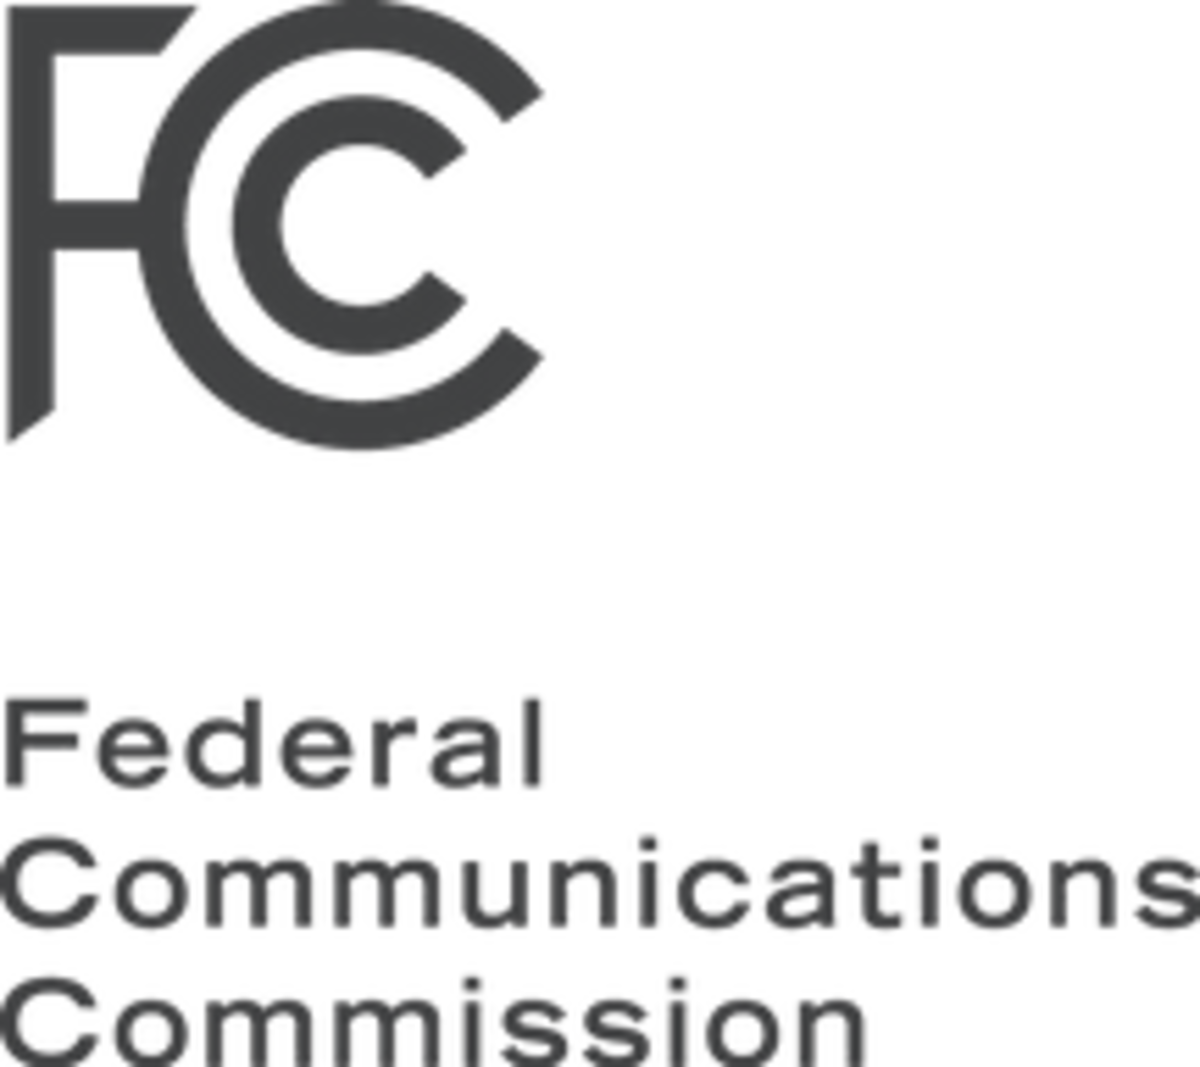 Federal Communications Commission, FCC - logo